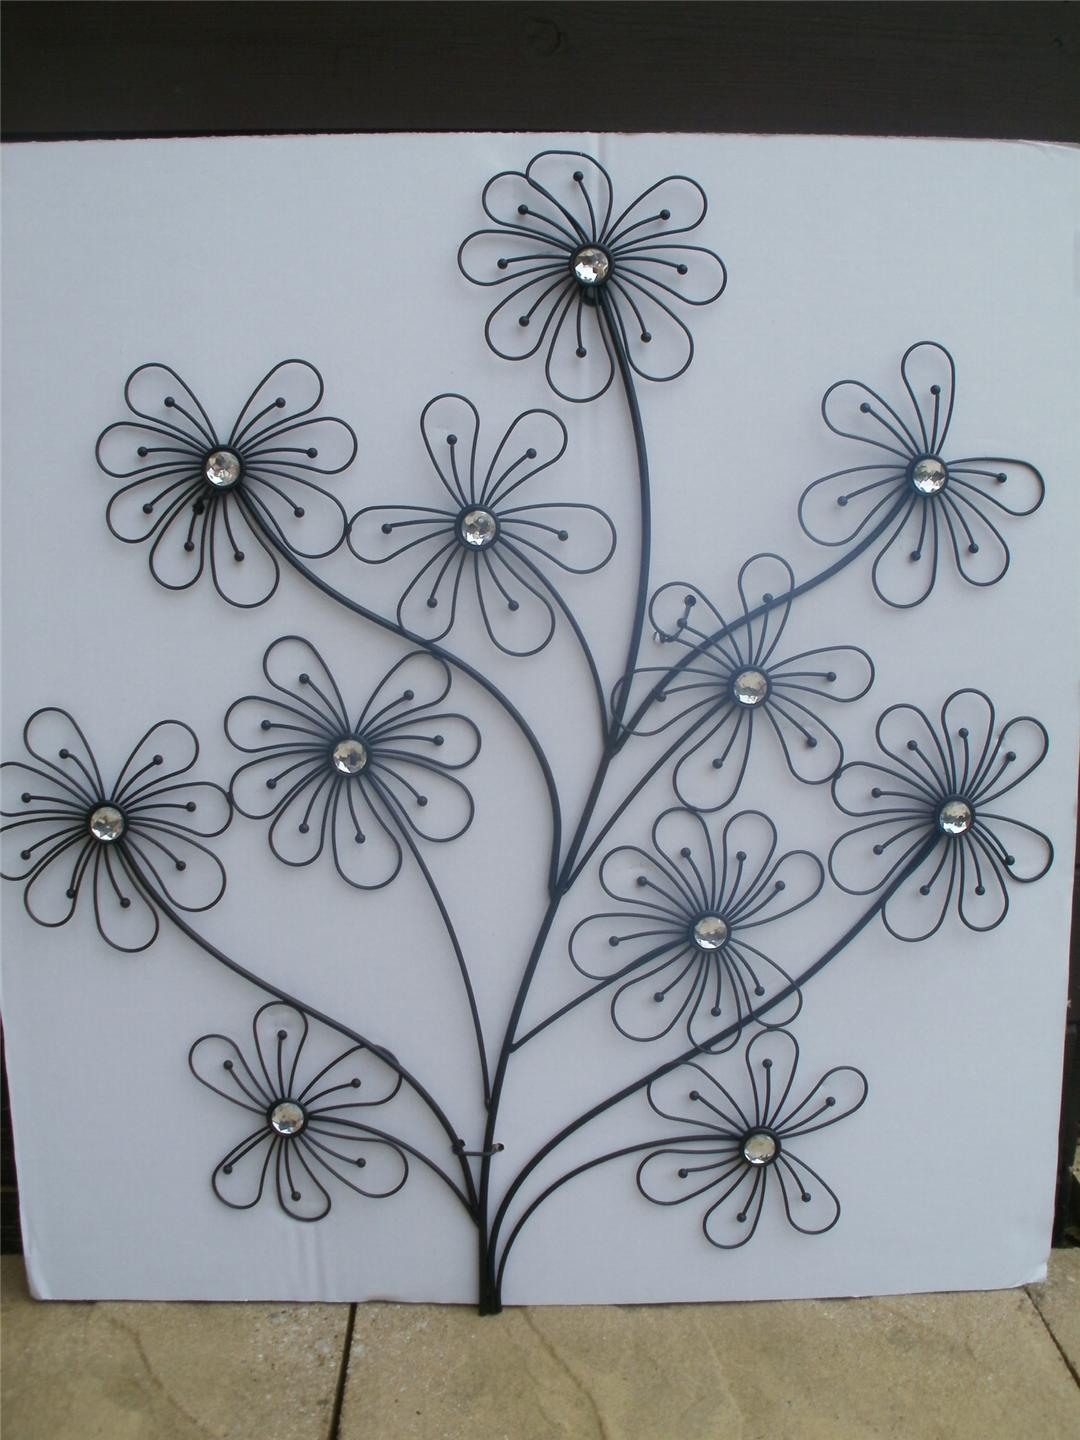 LARGE BLACK METAL WALL ART SCULPTURE FLOWER with DIAMANTE EFFECT JEWELS NEW